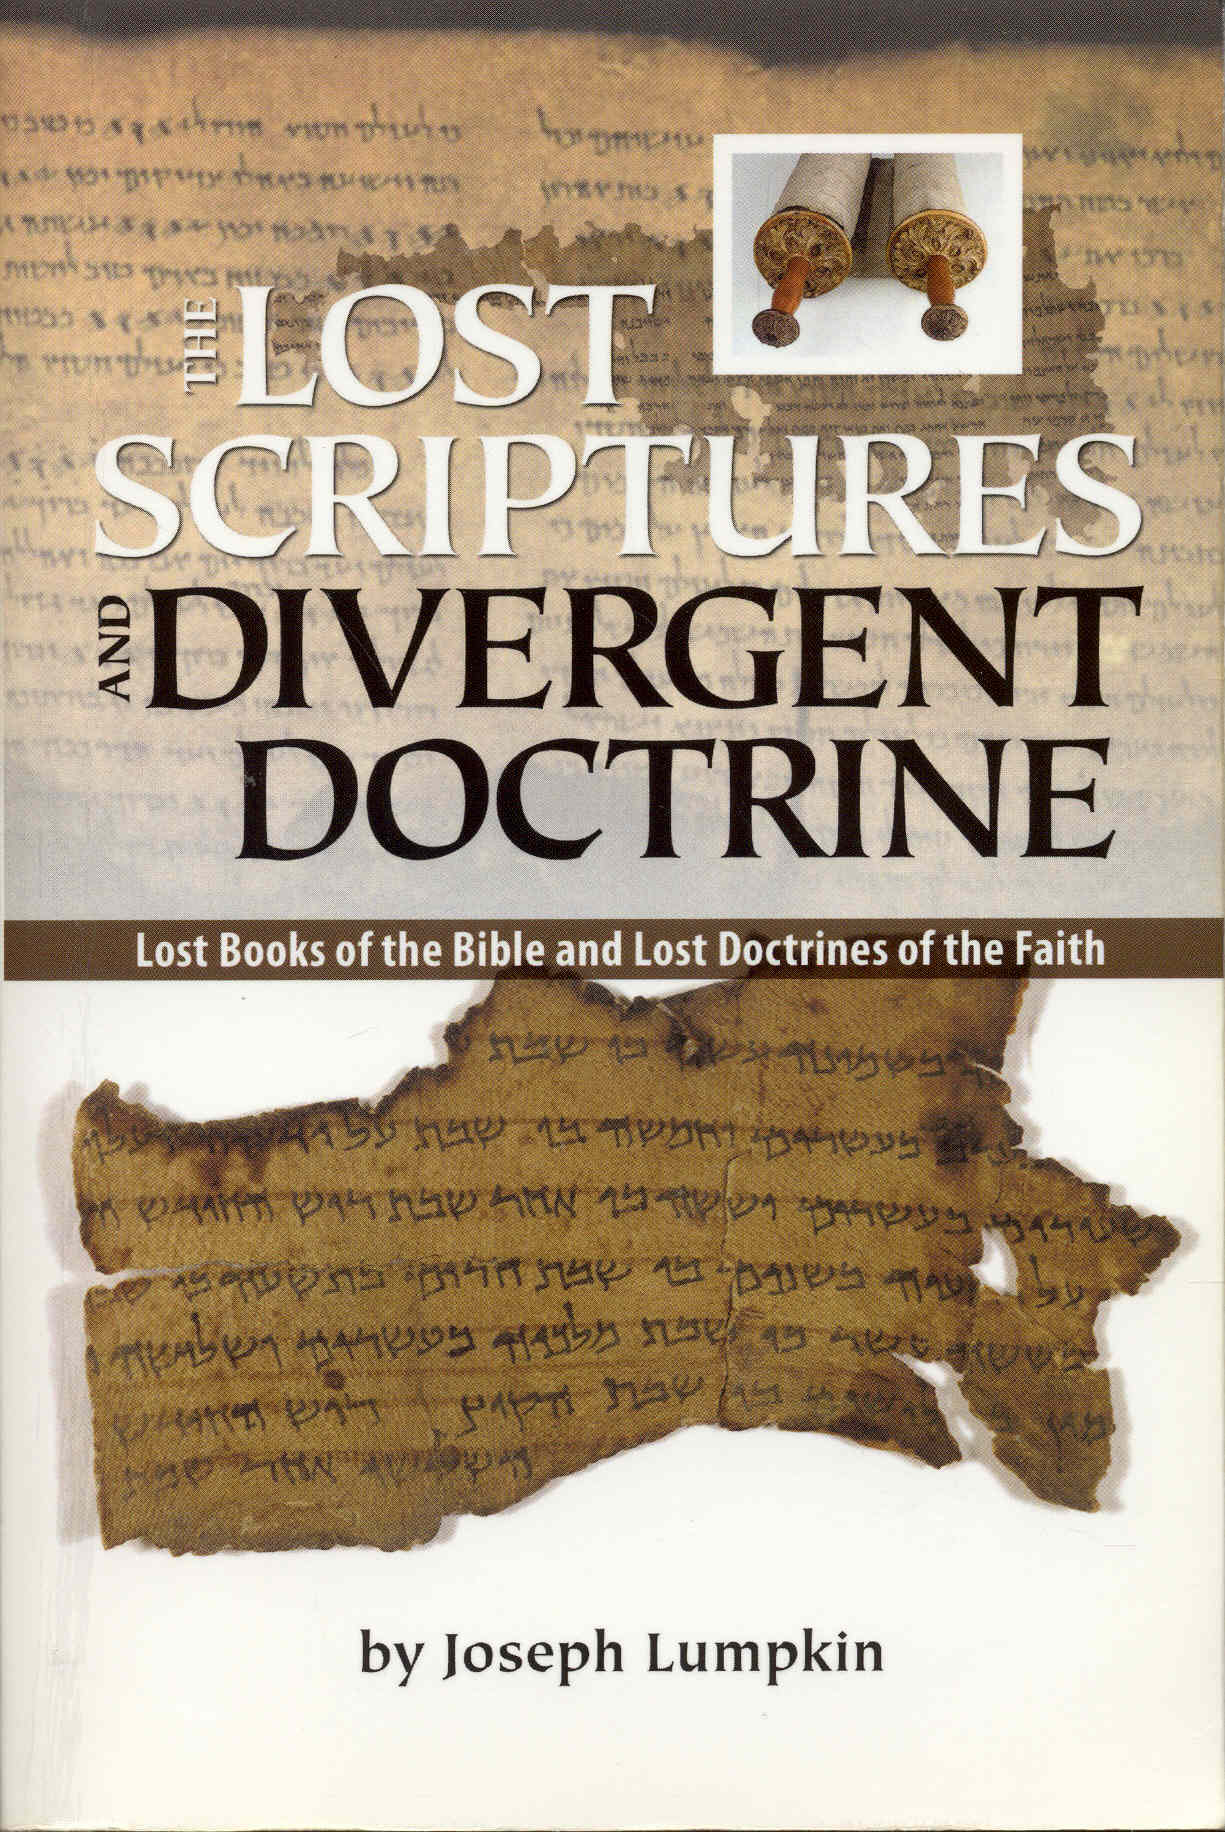 Image for The Lost Scripture and Divergent Doctrine: Lost Books of the Bible and Lost Doctrines of the Faith